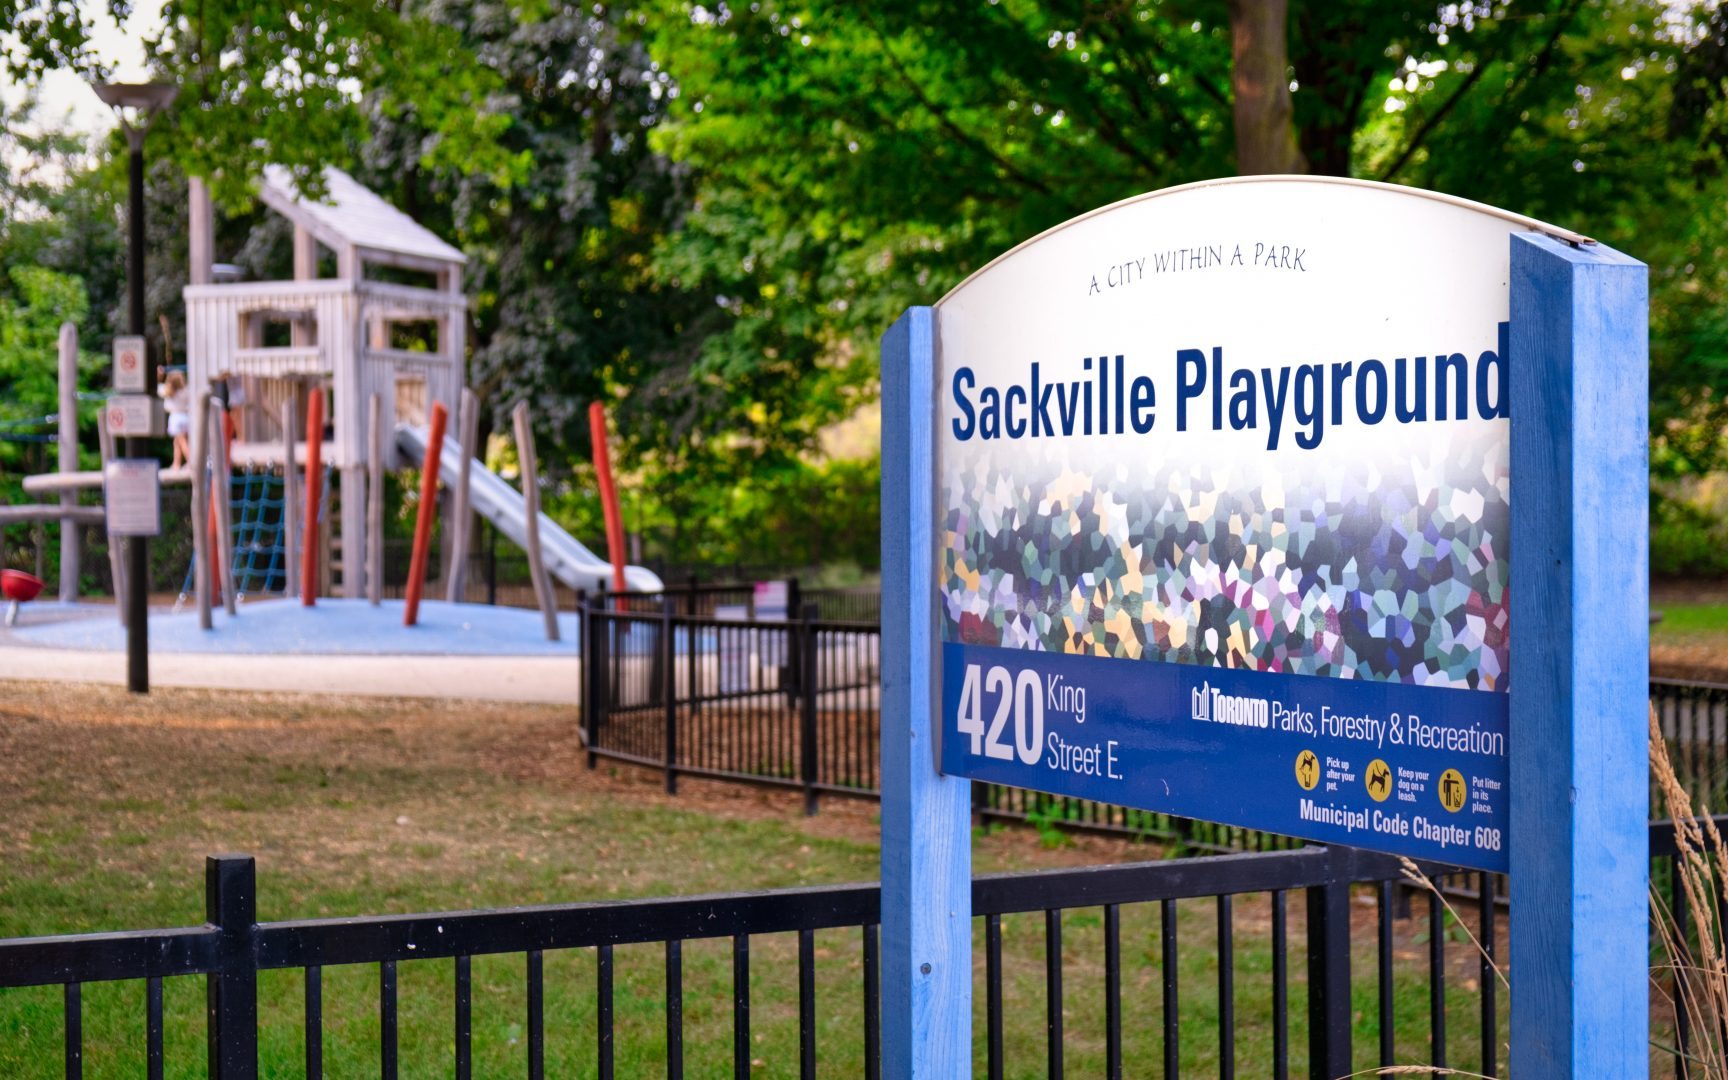 Sackville Playground on King St E (c) Photo by SHANE Maps exclusively for SHANE Maps